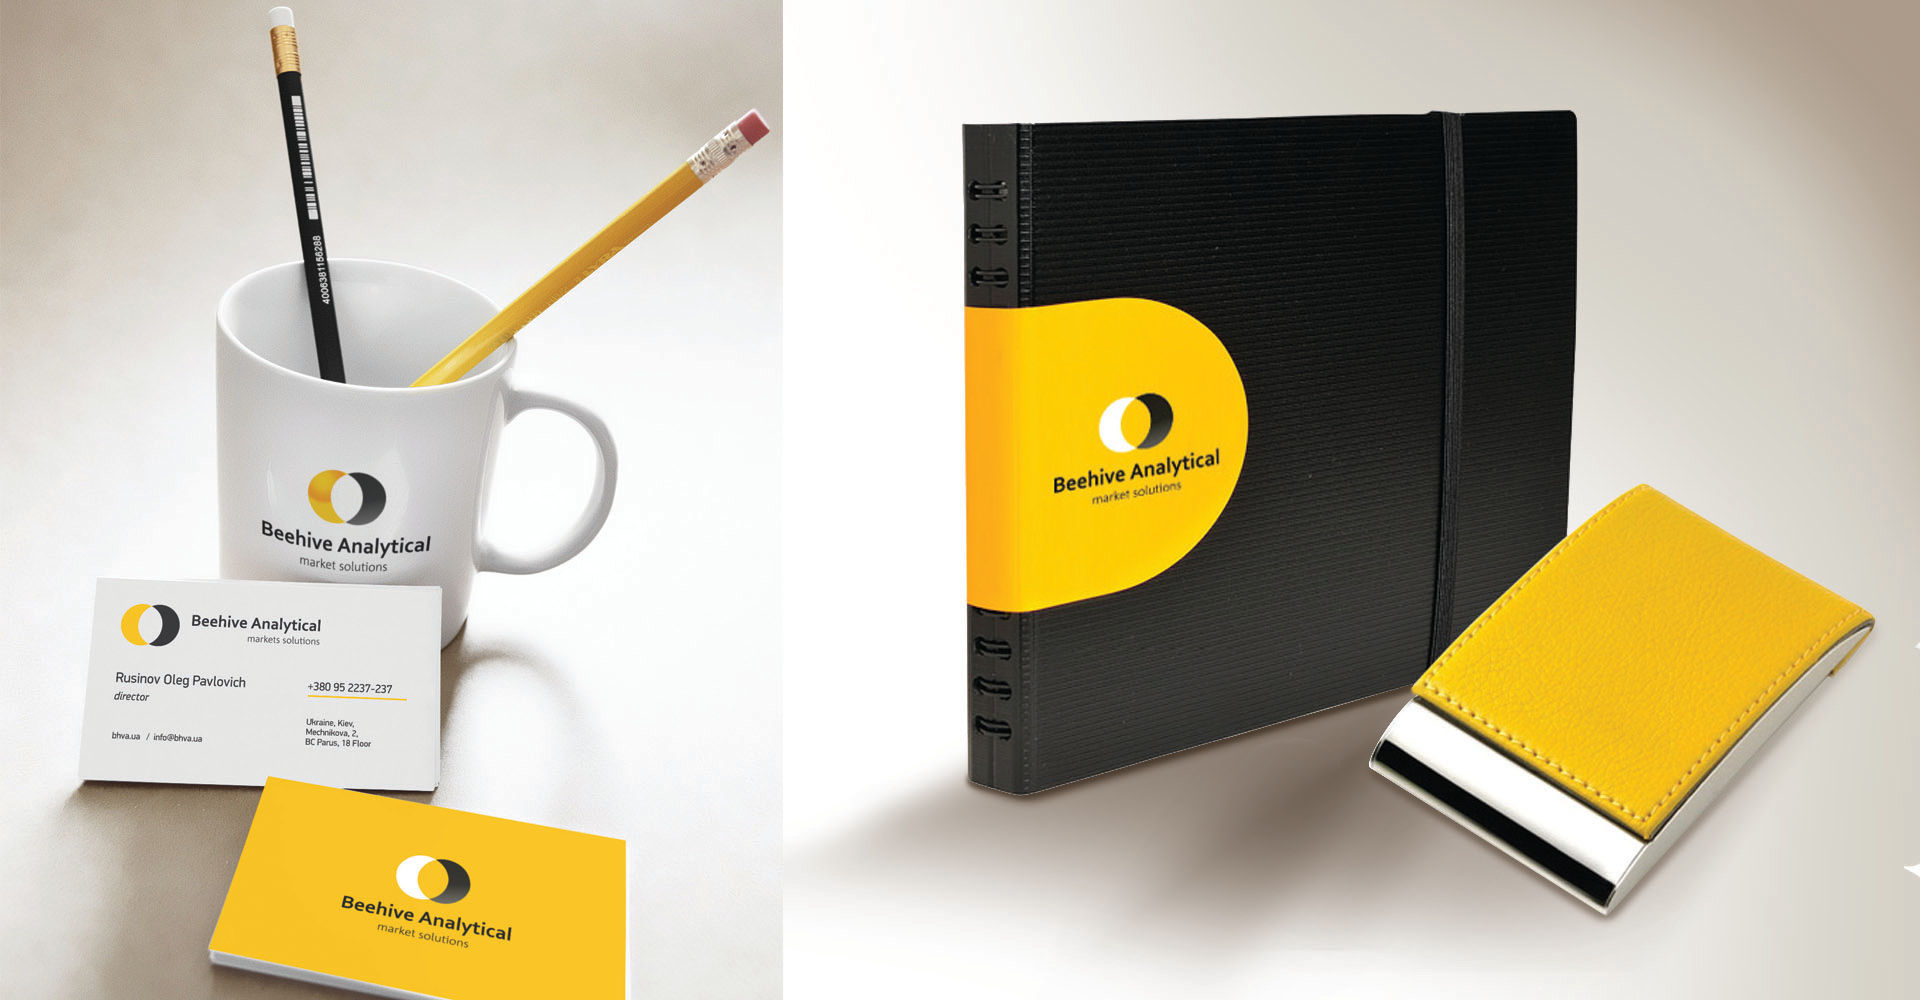 Development of the logo of a financial company, Finance company logo development